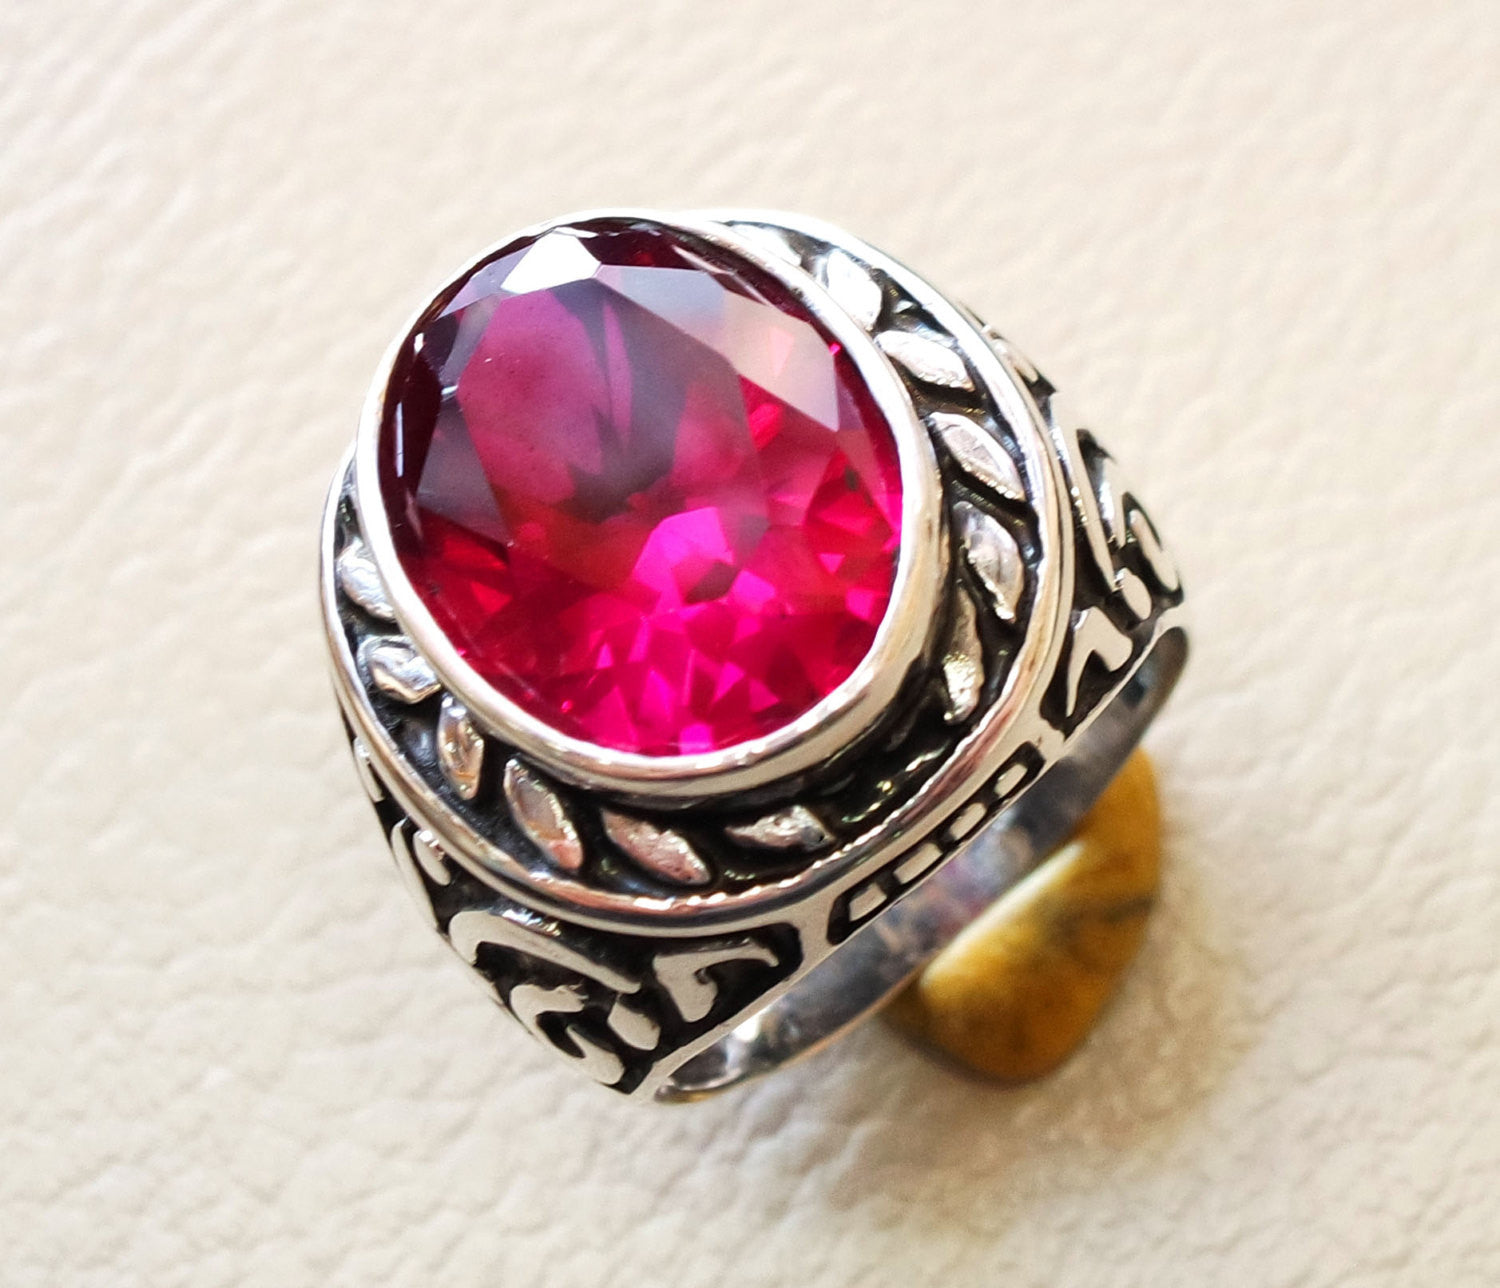 ruby identical synthetic stone high quality imitation corundum red color huge heavy men ring sterling silver 925 any size ottoman jewelry